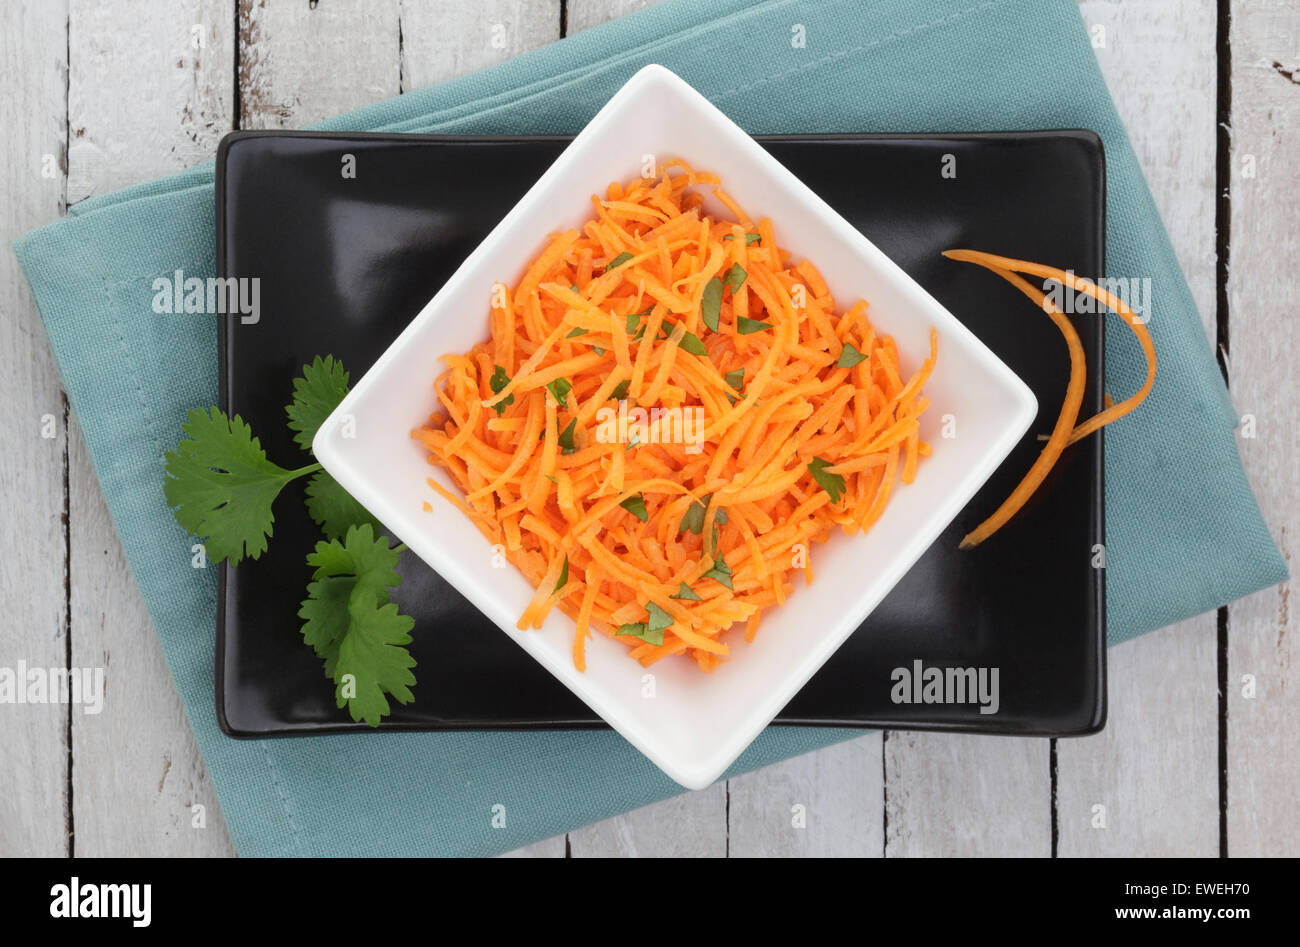 Carrot Salad garnished with Coriander - Stock Image